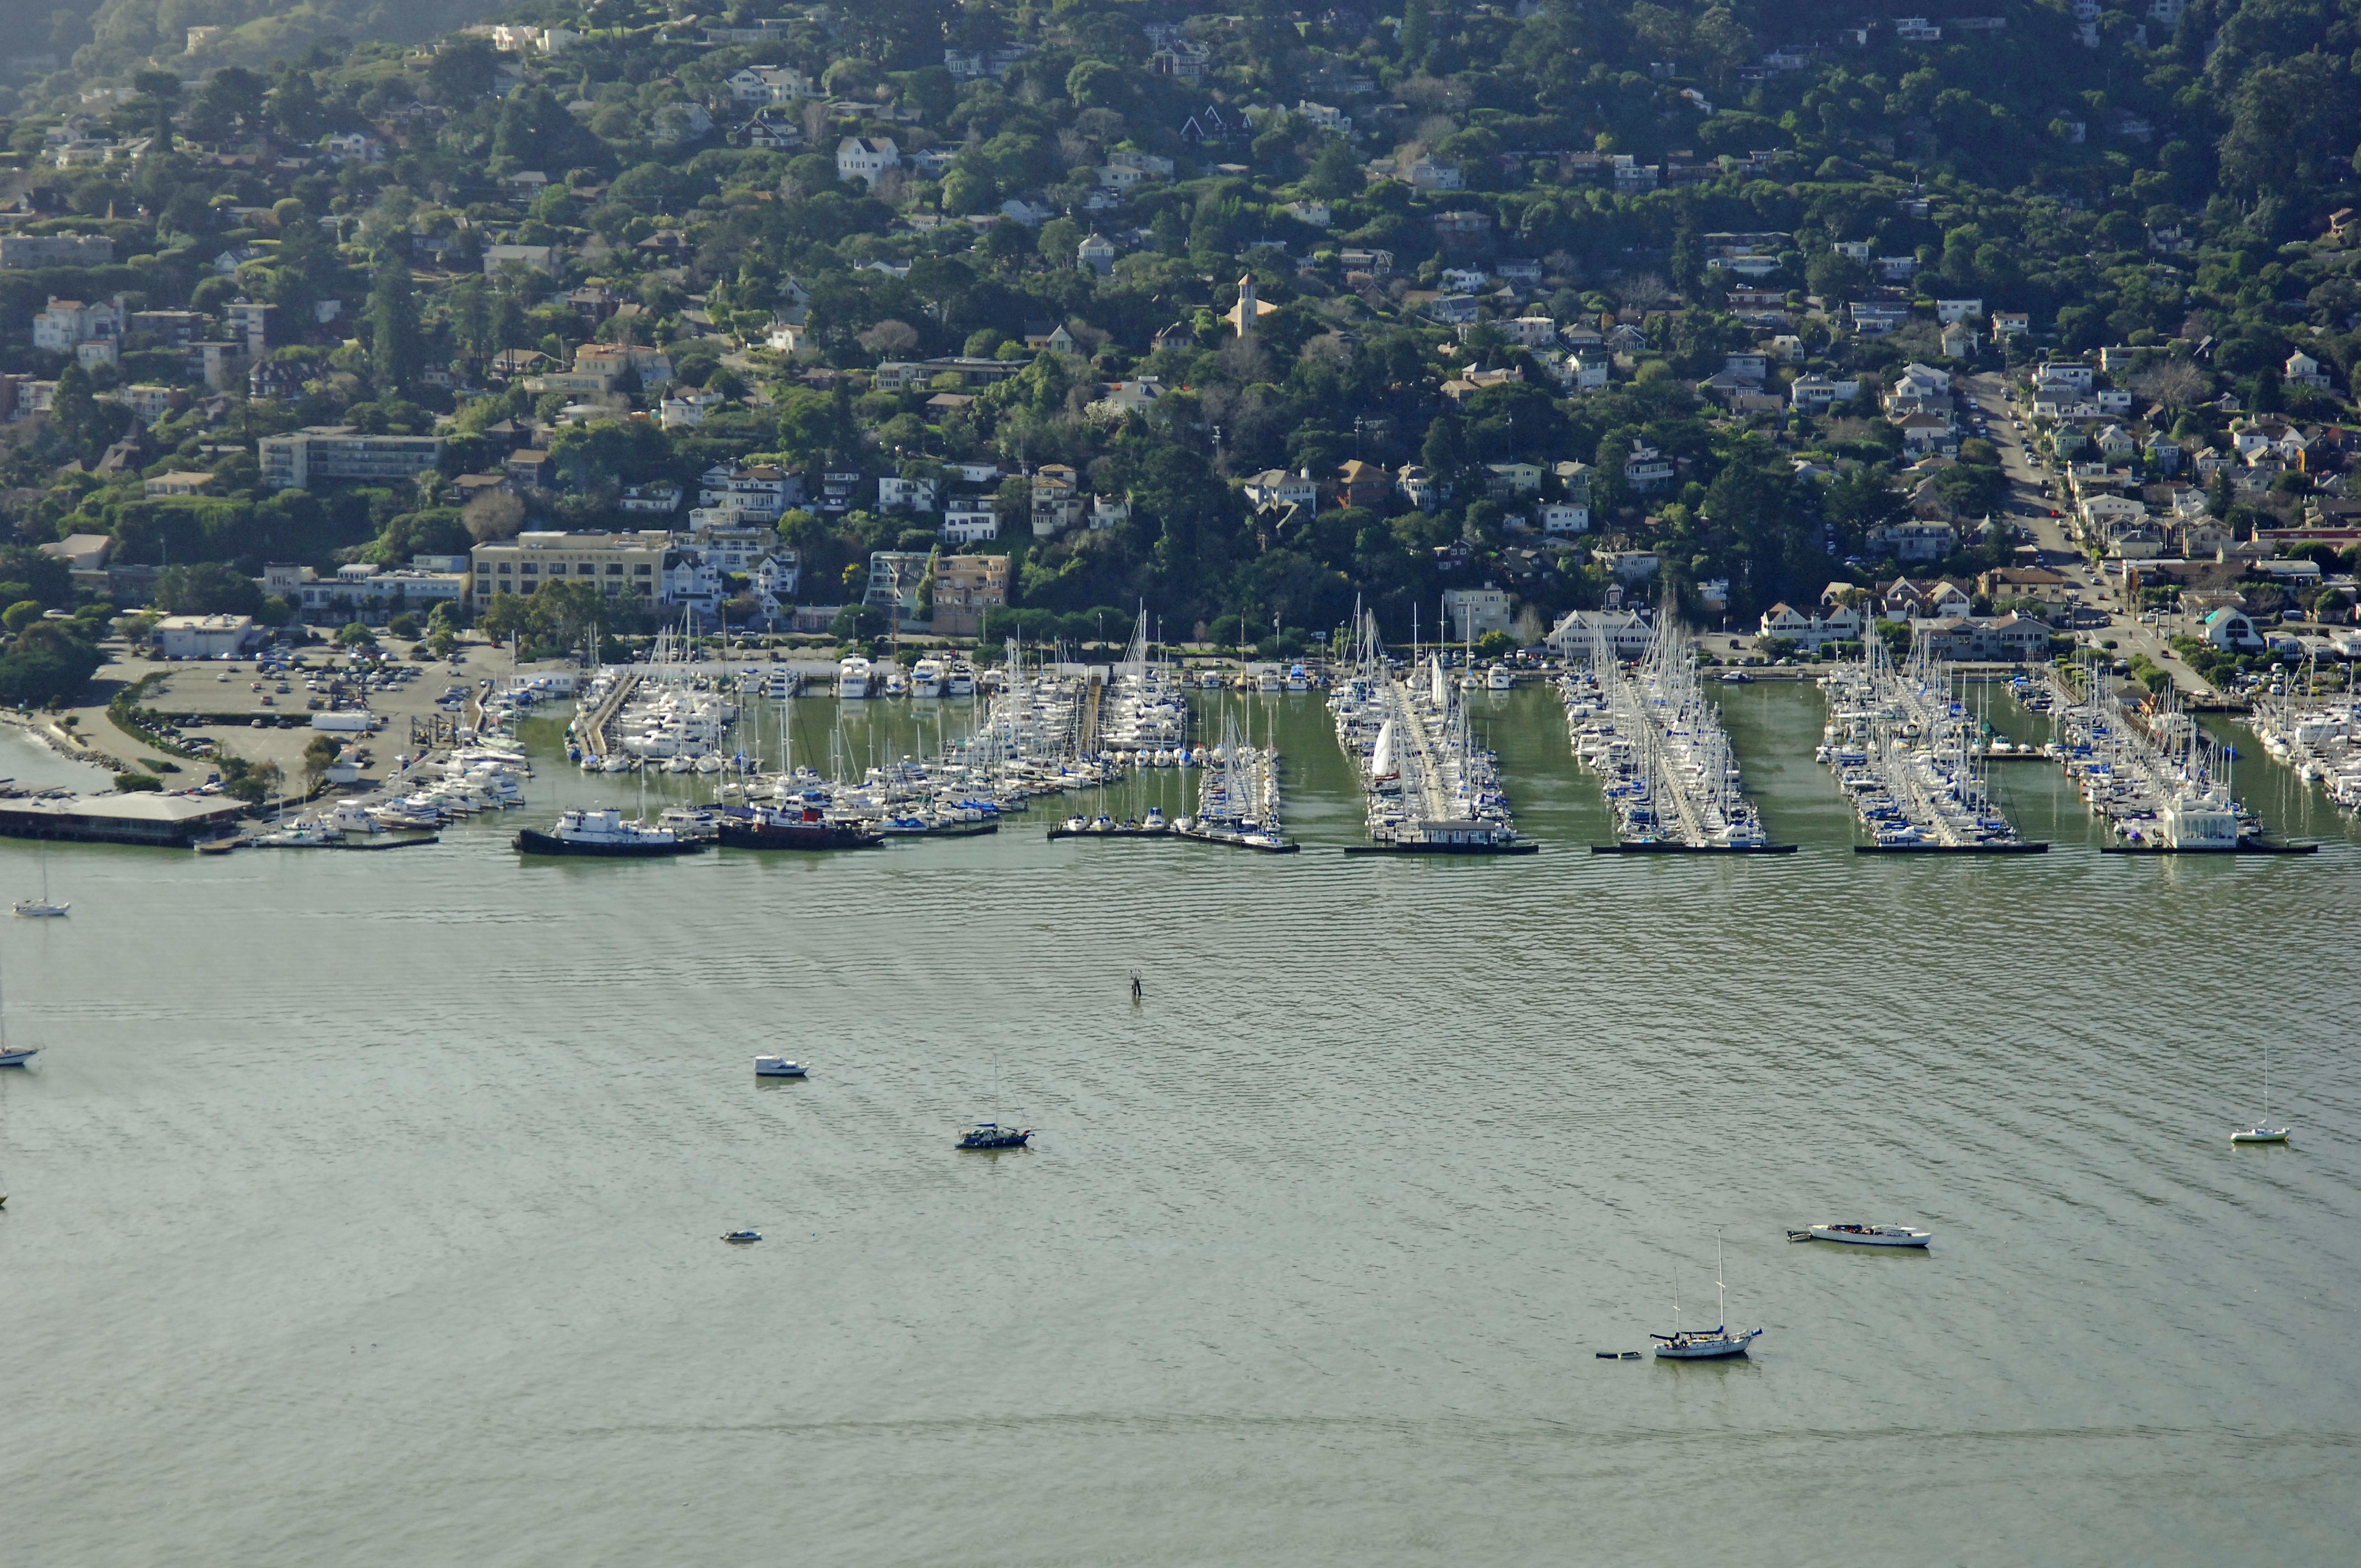 Sausalito Yacht Harbor In Sausalito Ca United States